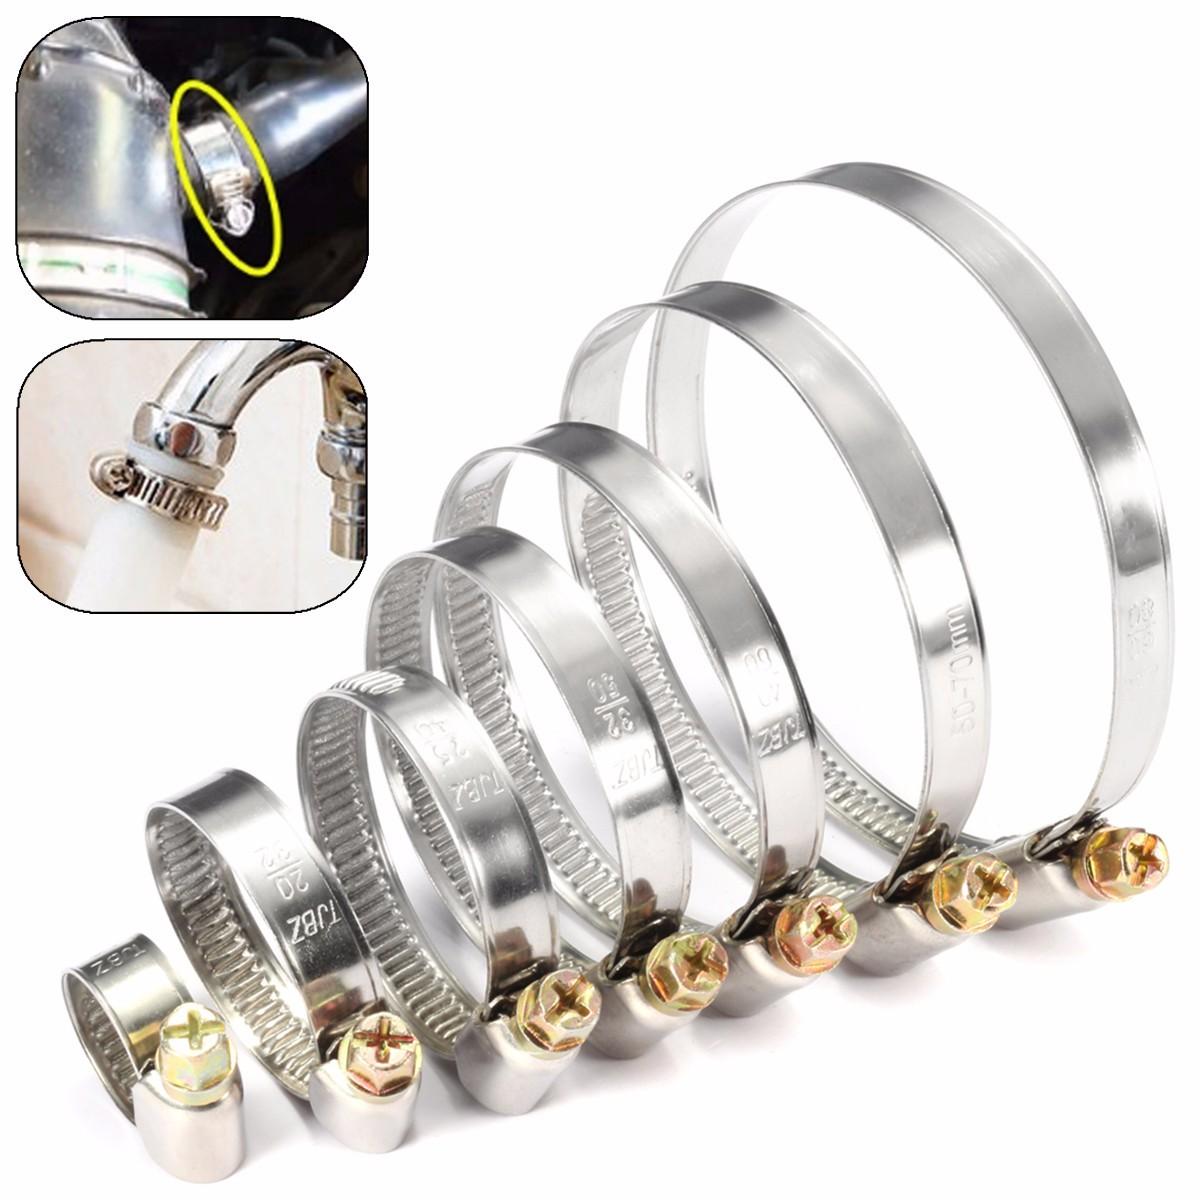 5Pcs 8-80mm Durable Anti-oxidation Pipe Clamps Stainless Steel Hose Clips Fuel Hose Pipe Clamps Worm Drive